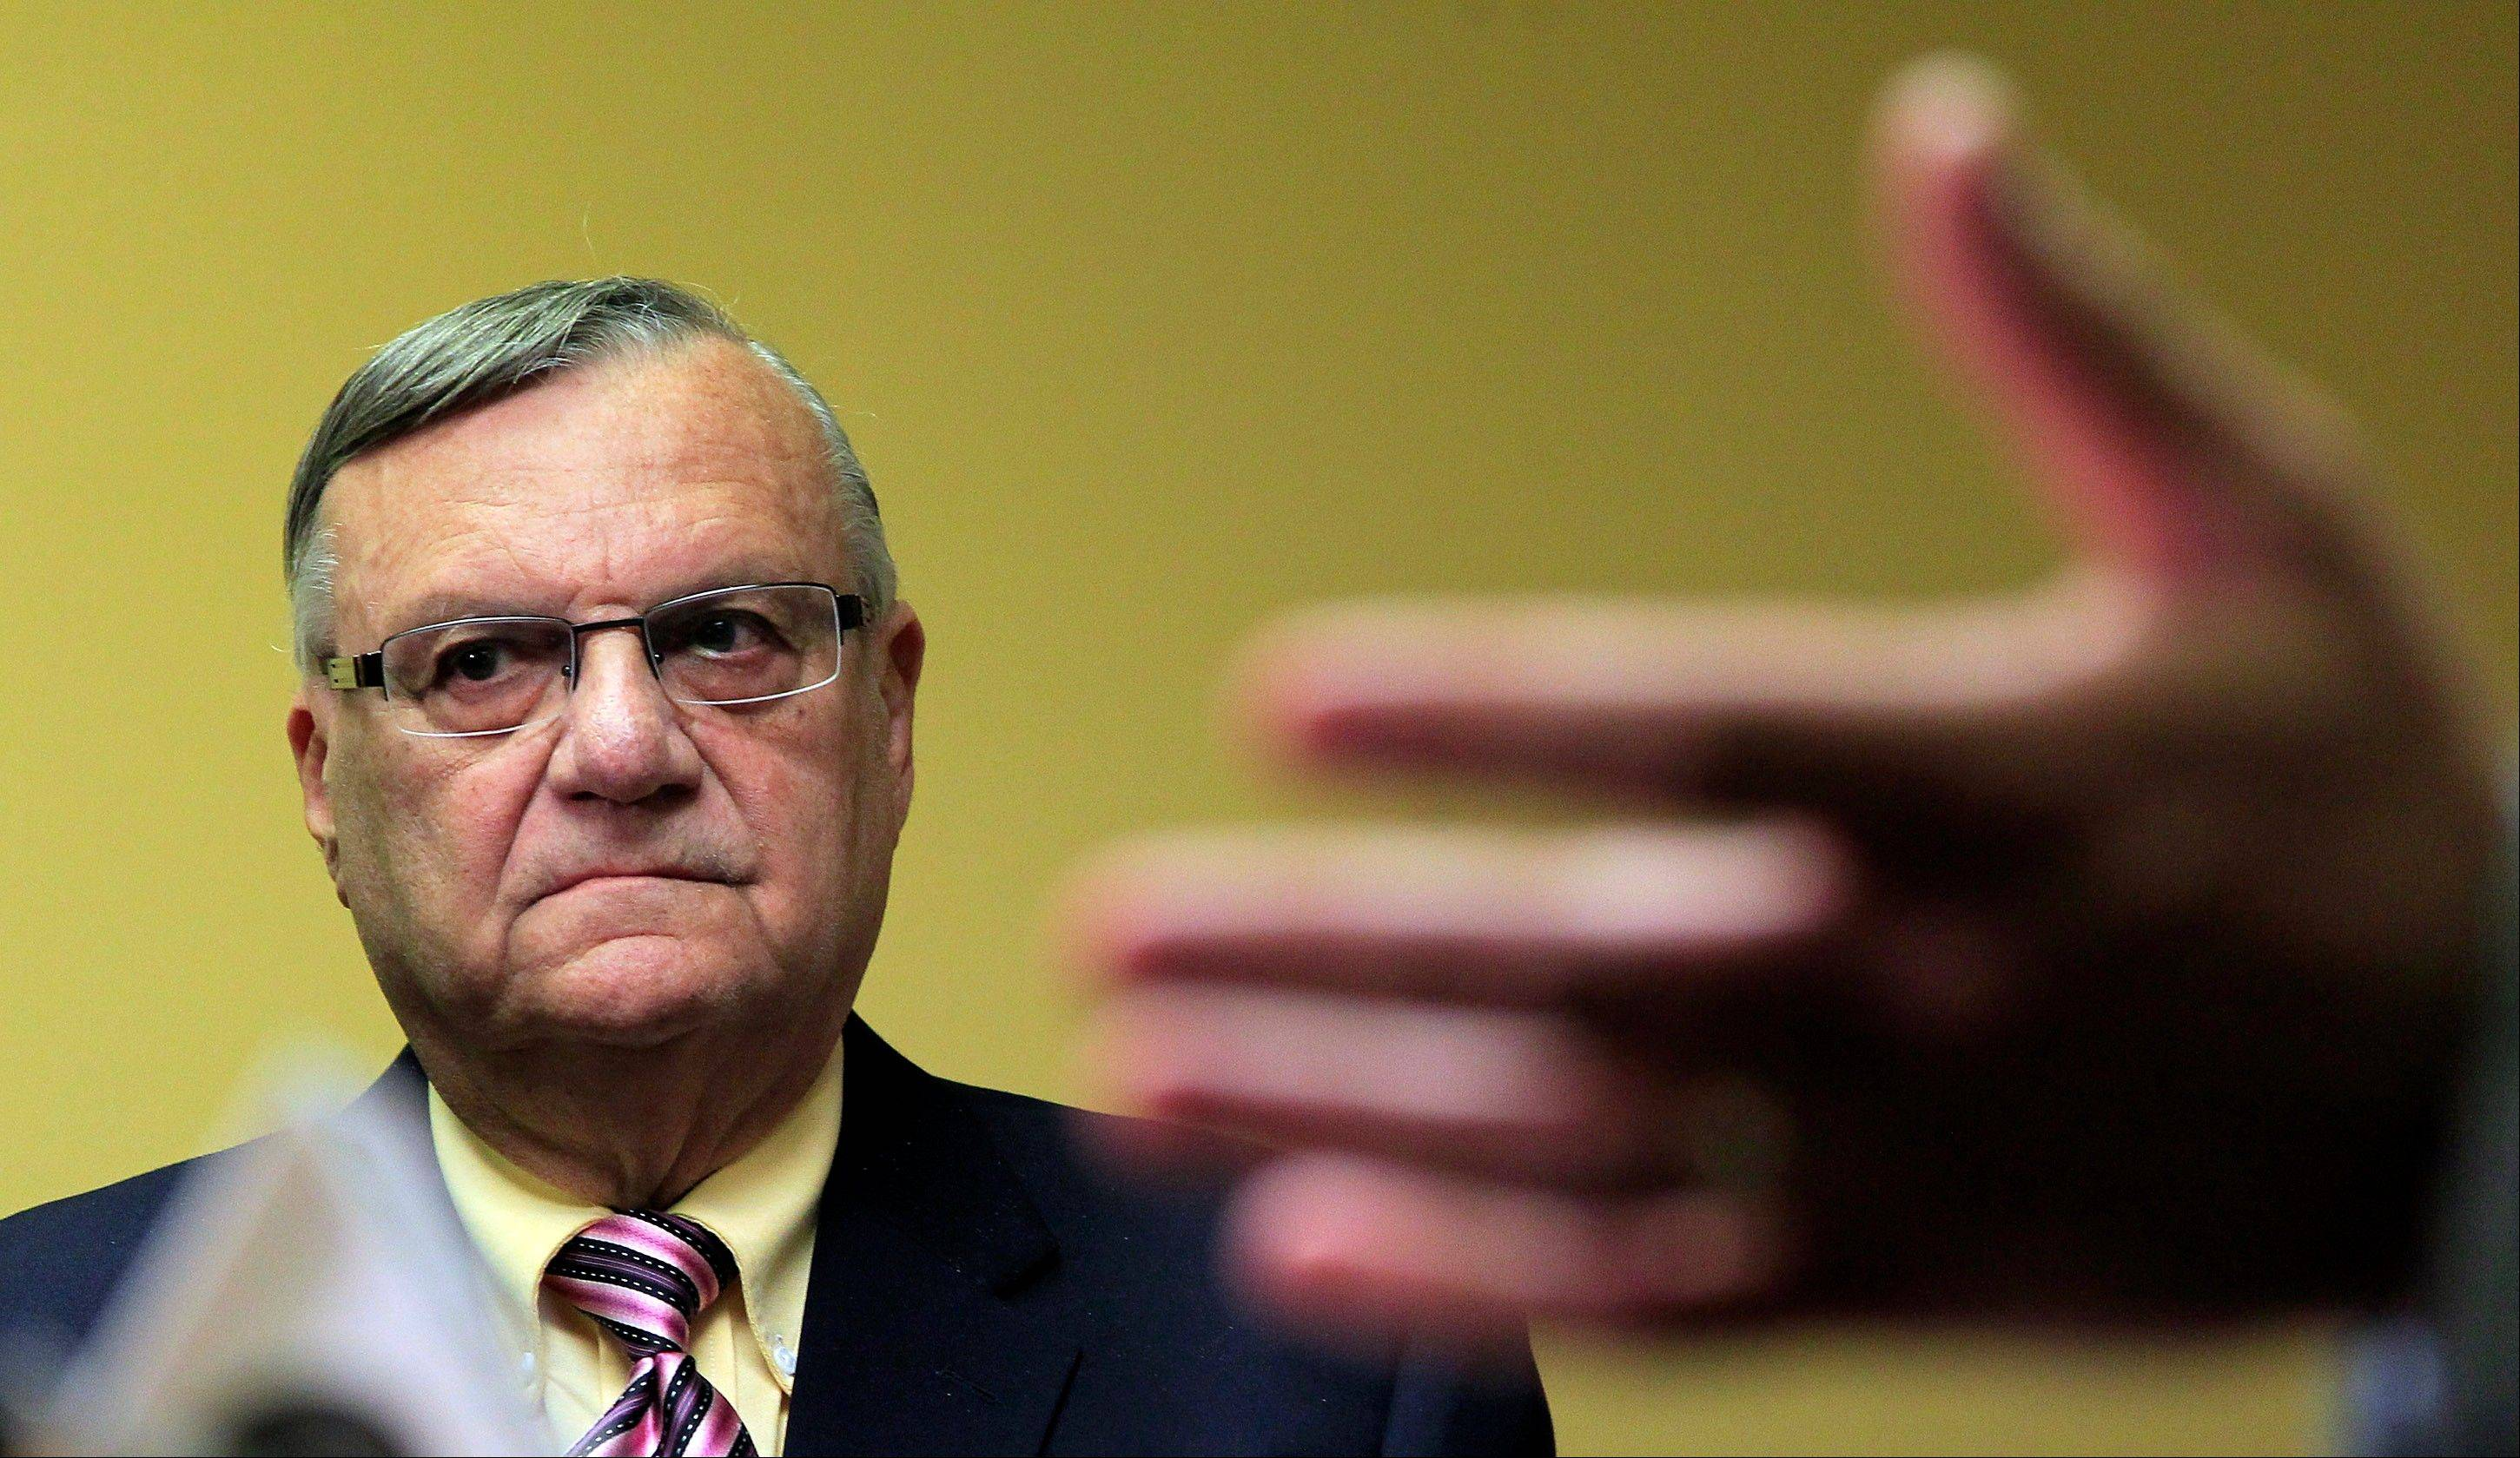 Maricopa County Sheriff Joe Arpaio, who led the way for local police across the country to take up immigration enforcement, is reconsidering his crackdowns — and other law enforcement officials who followed his lead are expected to eventually back away, too.